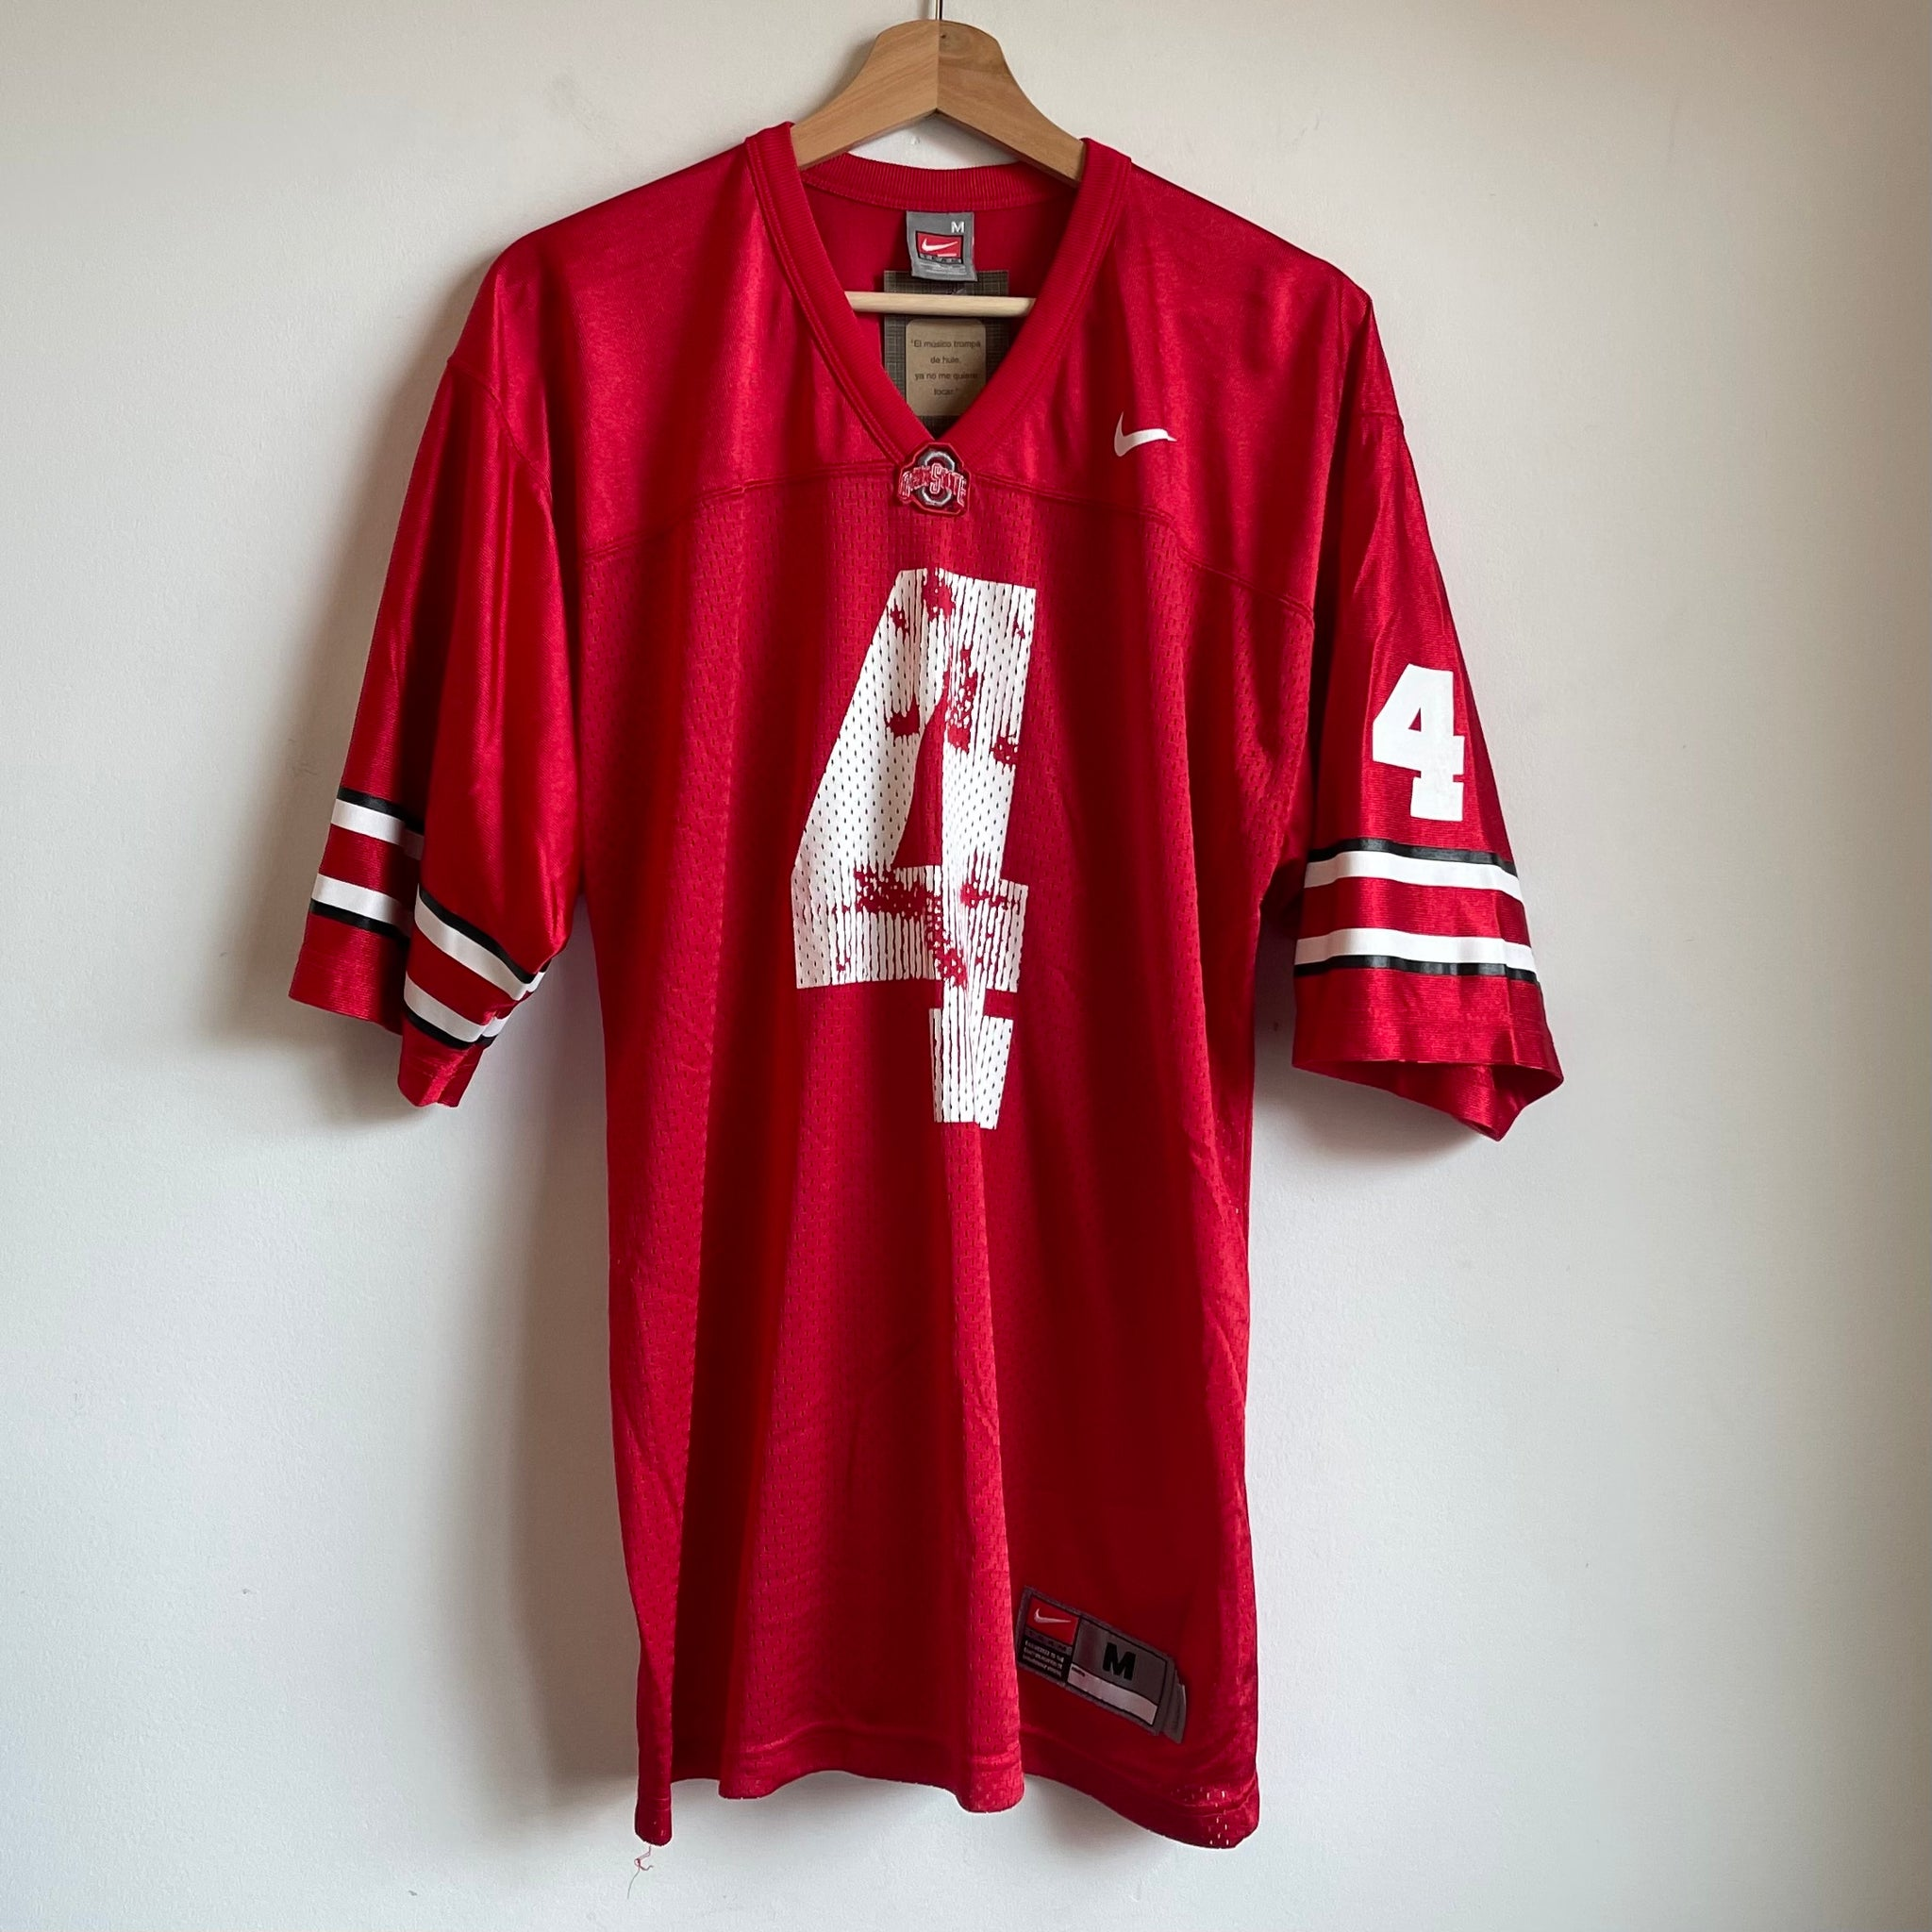 Nike Ohio State Red/White Football Jersey